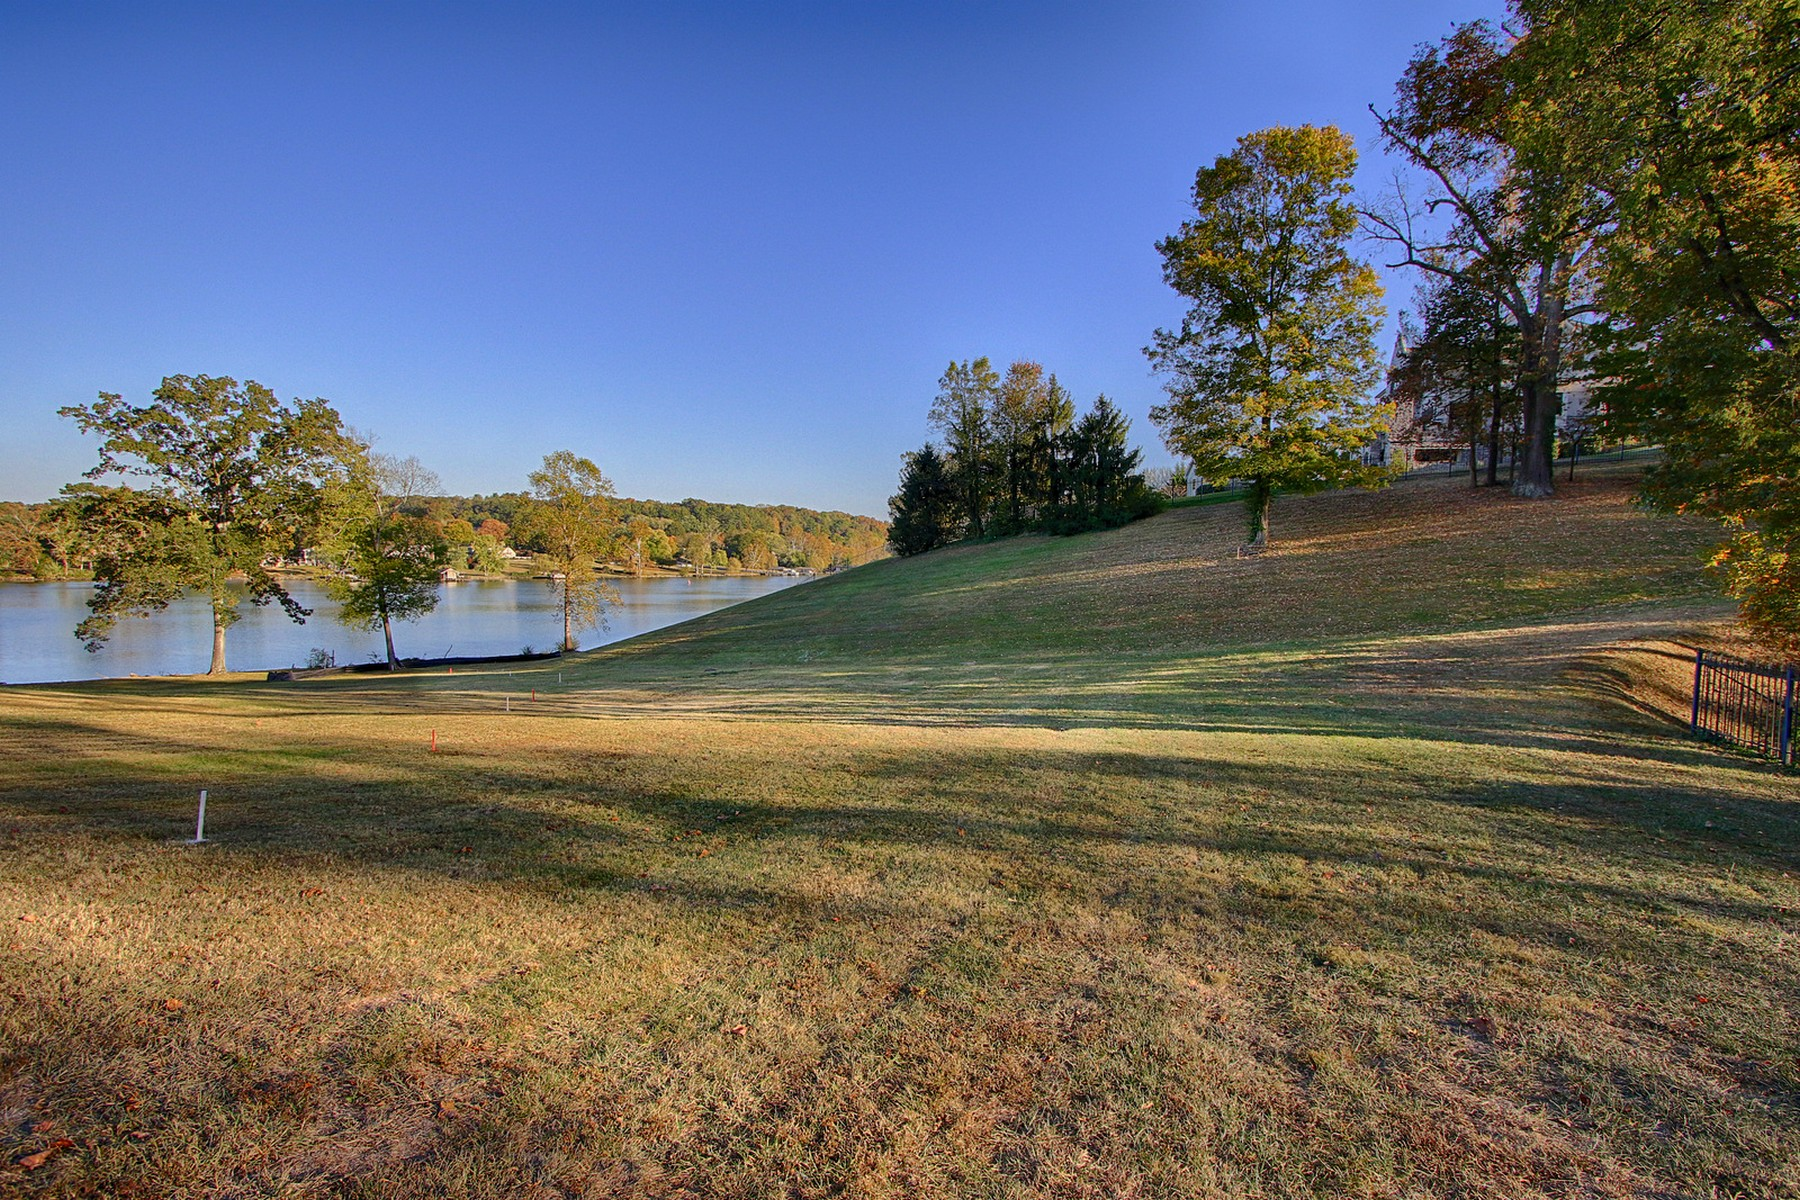 Land for Sale at Villa Estates At Lyons View Pike 5656 Lyons View Pike Lot #2 Knoxville, Tennessee 37919 United States